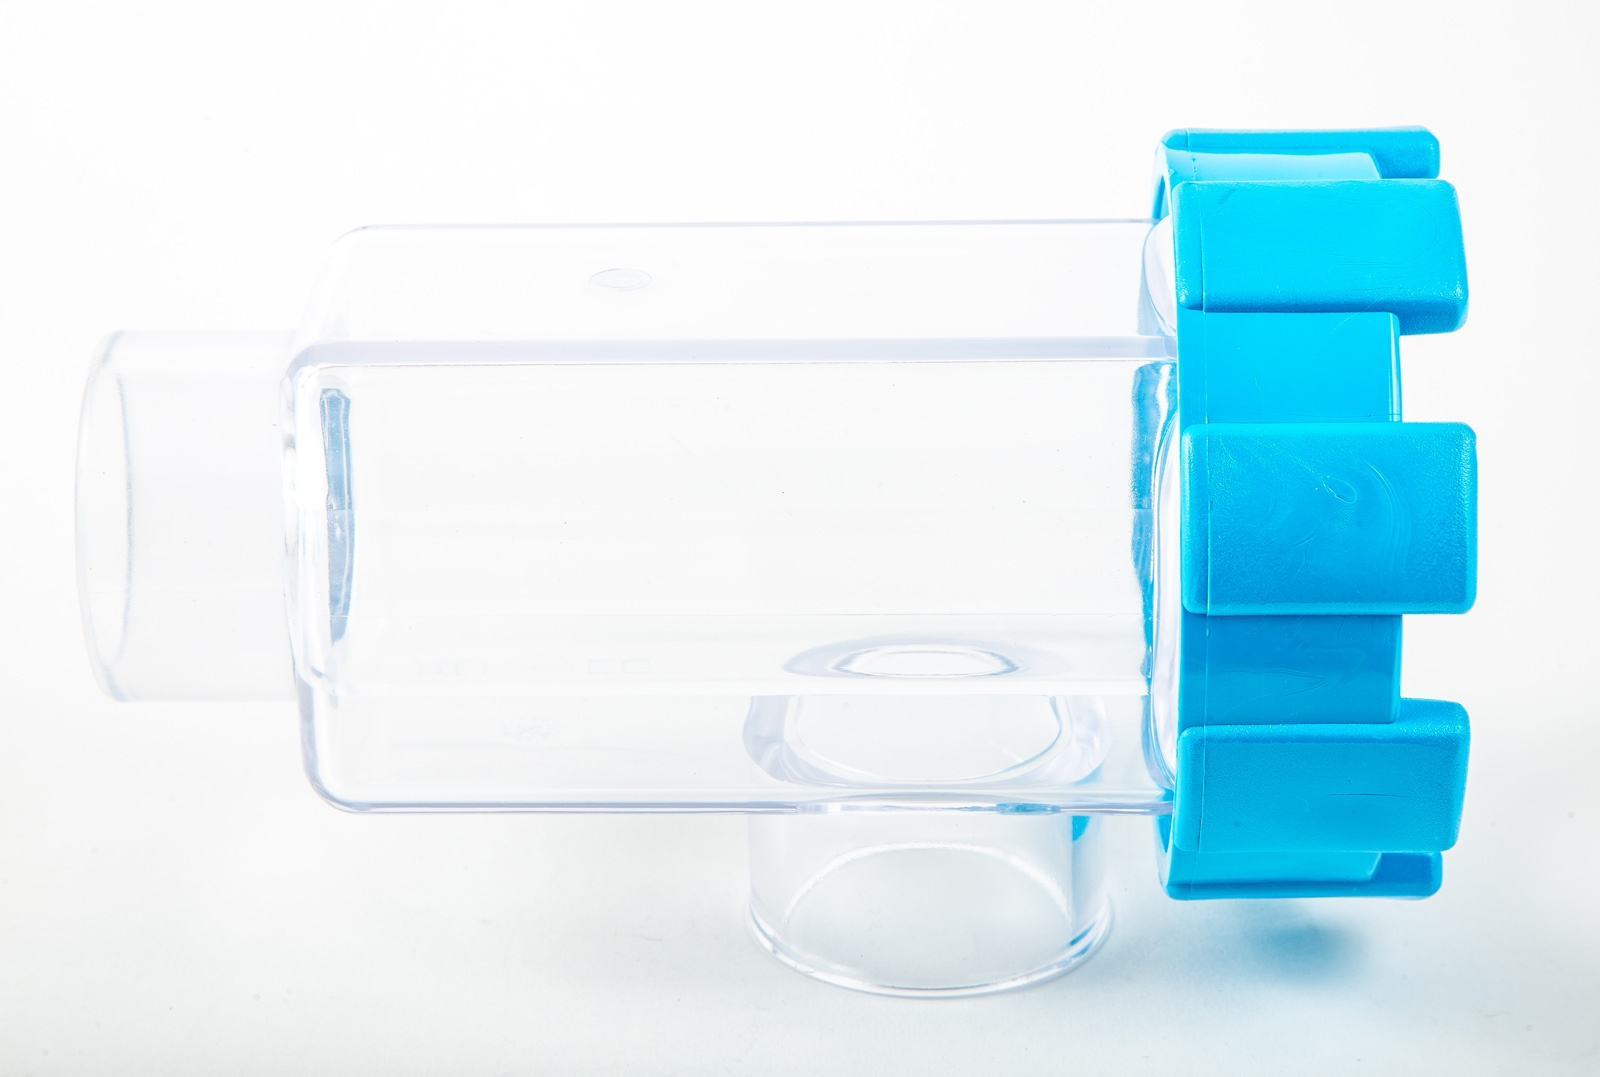 AutoClear cell housing against a white background.